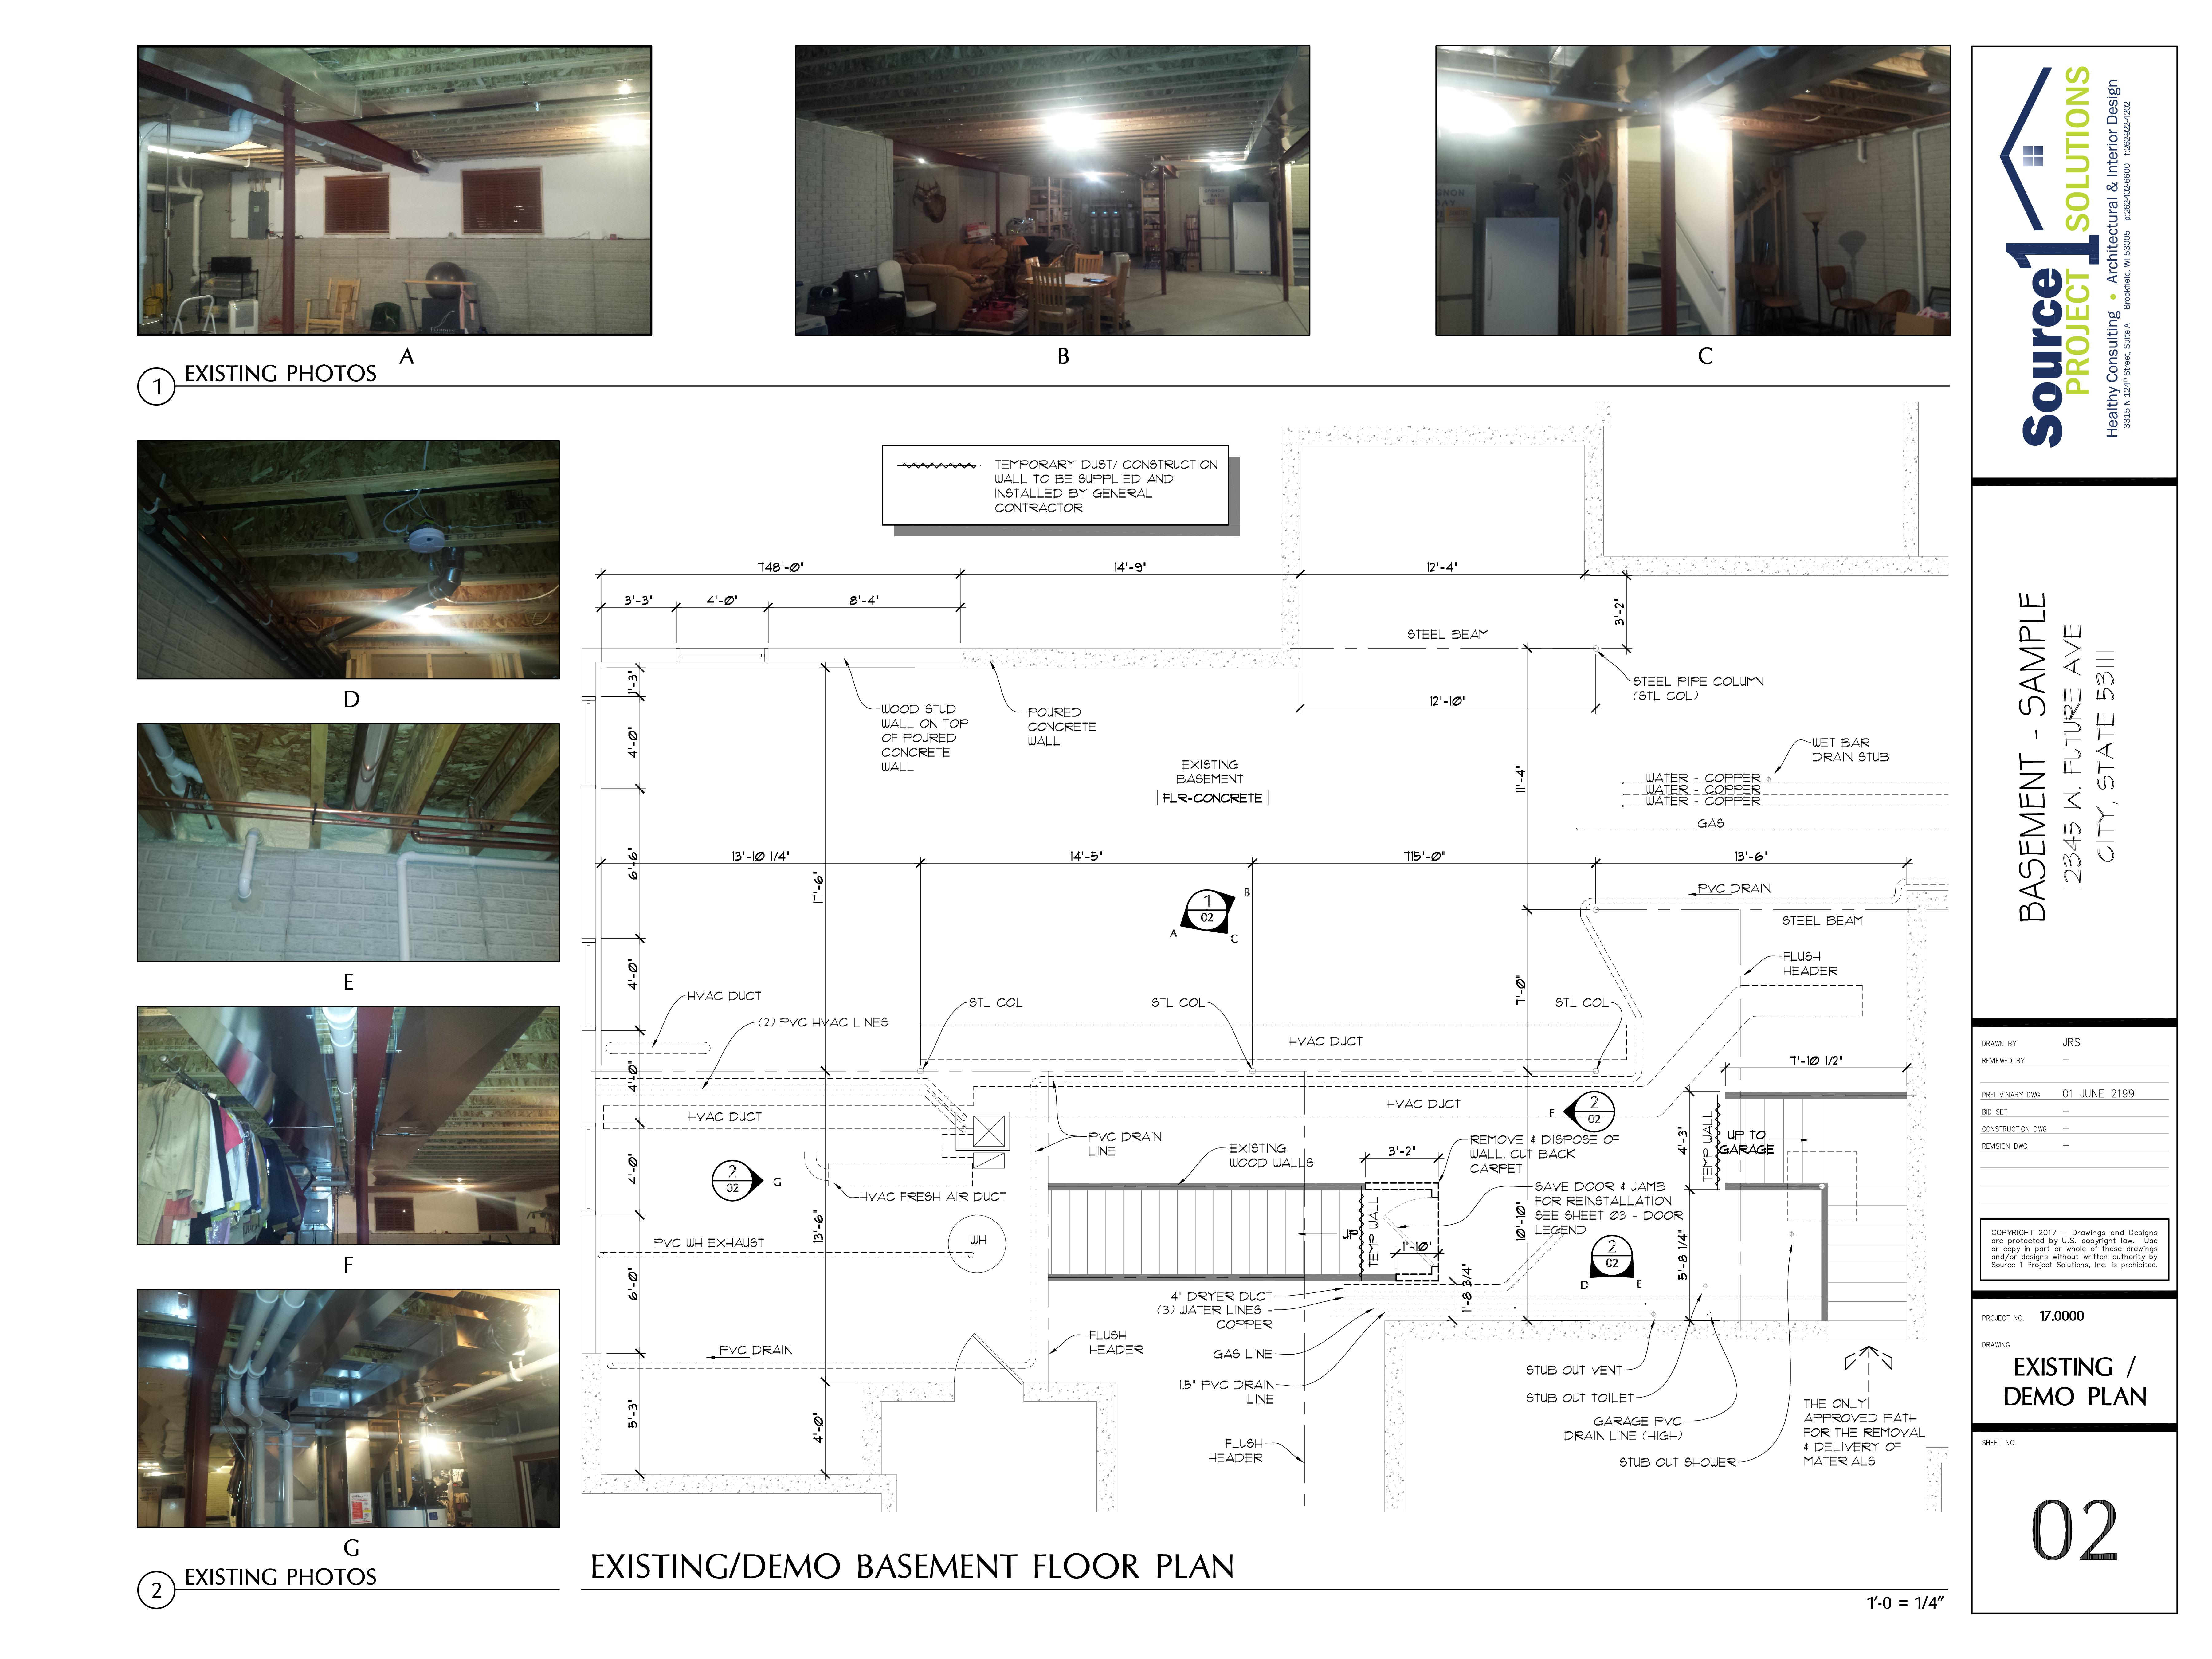 Source 1 Basement Plan - SAMPLE 01_2